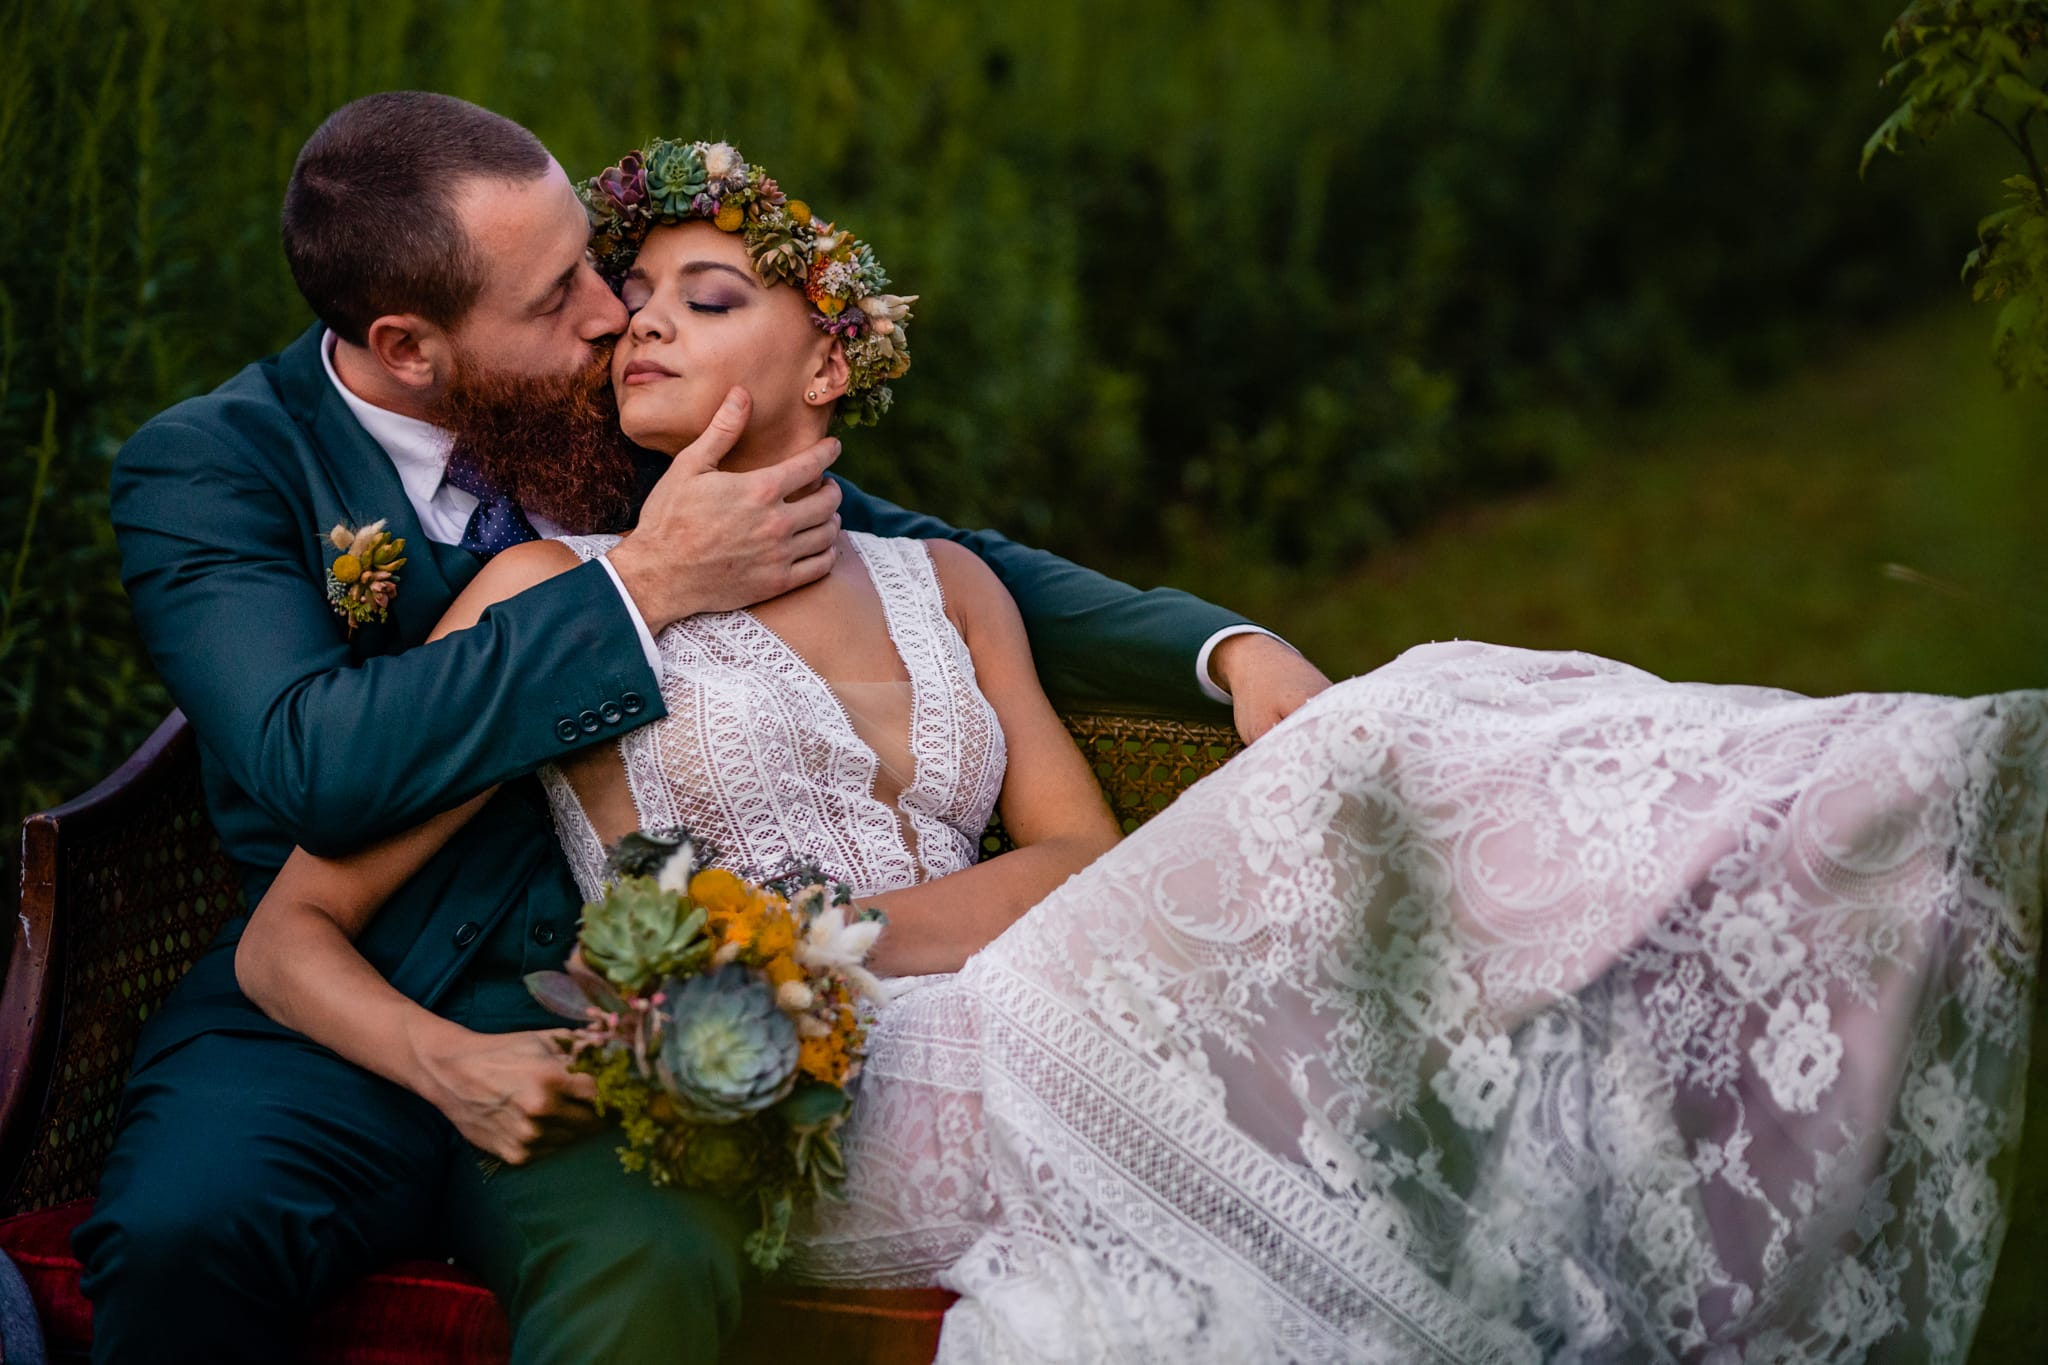 Groom kisses bride on a vintage couch in the woods after intimate elopement in Cincinnati, Ohio by Dayton Wedding Photographer Studio 22 Photography